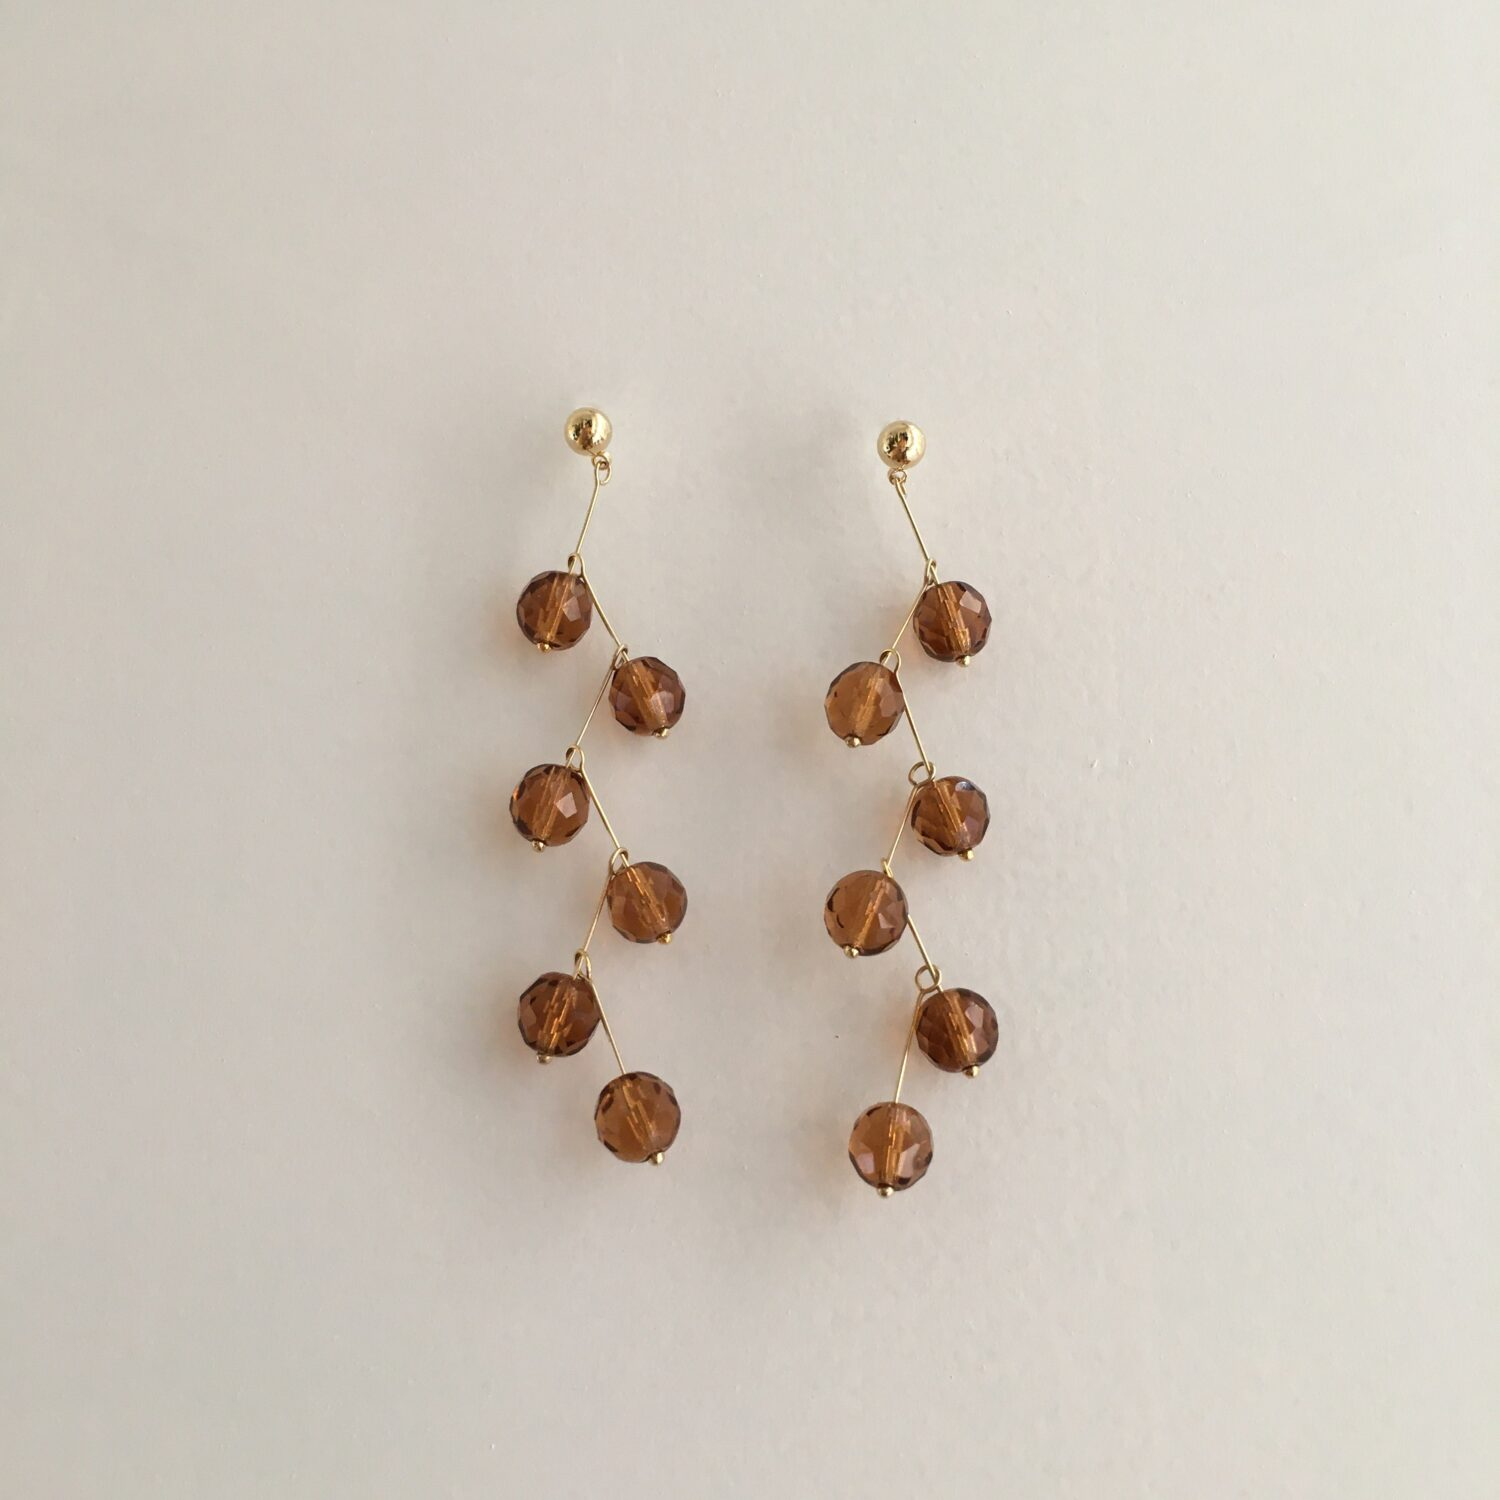 Bellavista Vintage Bead Earrings